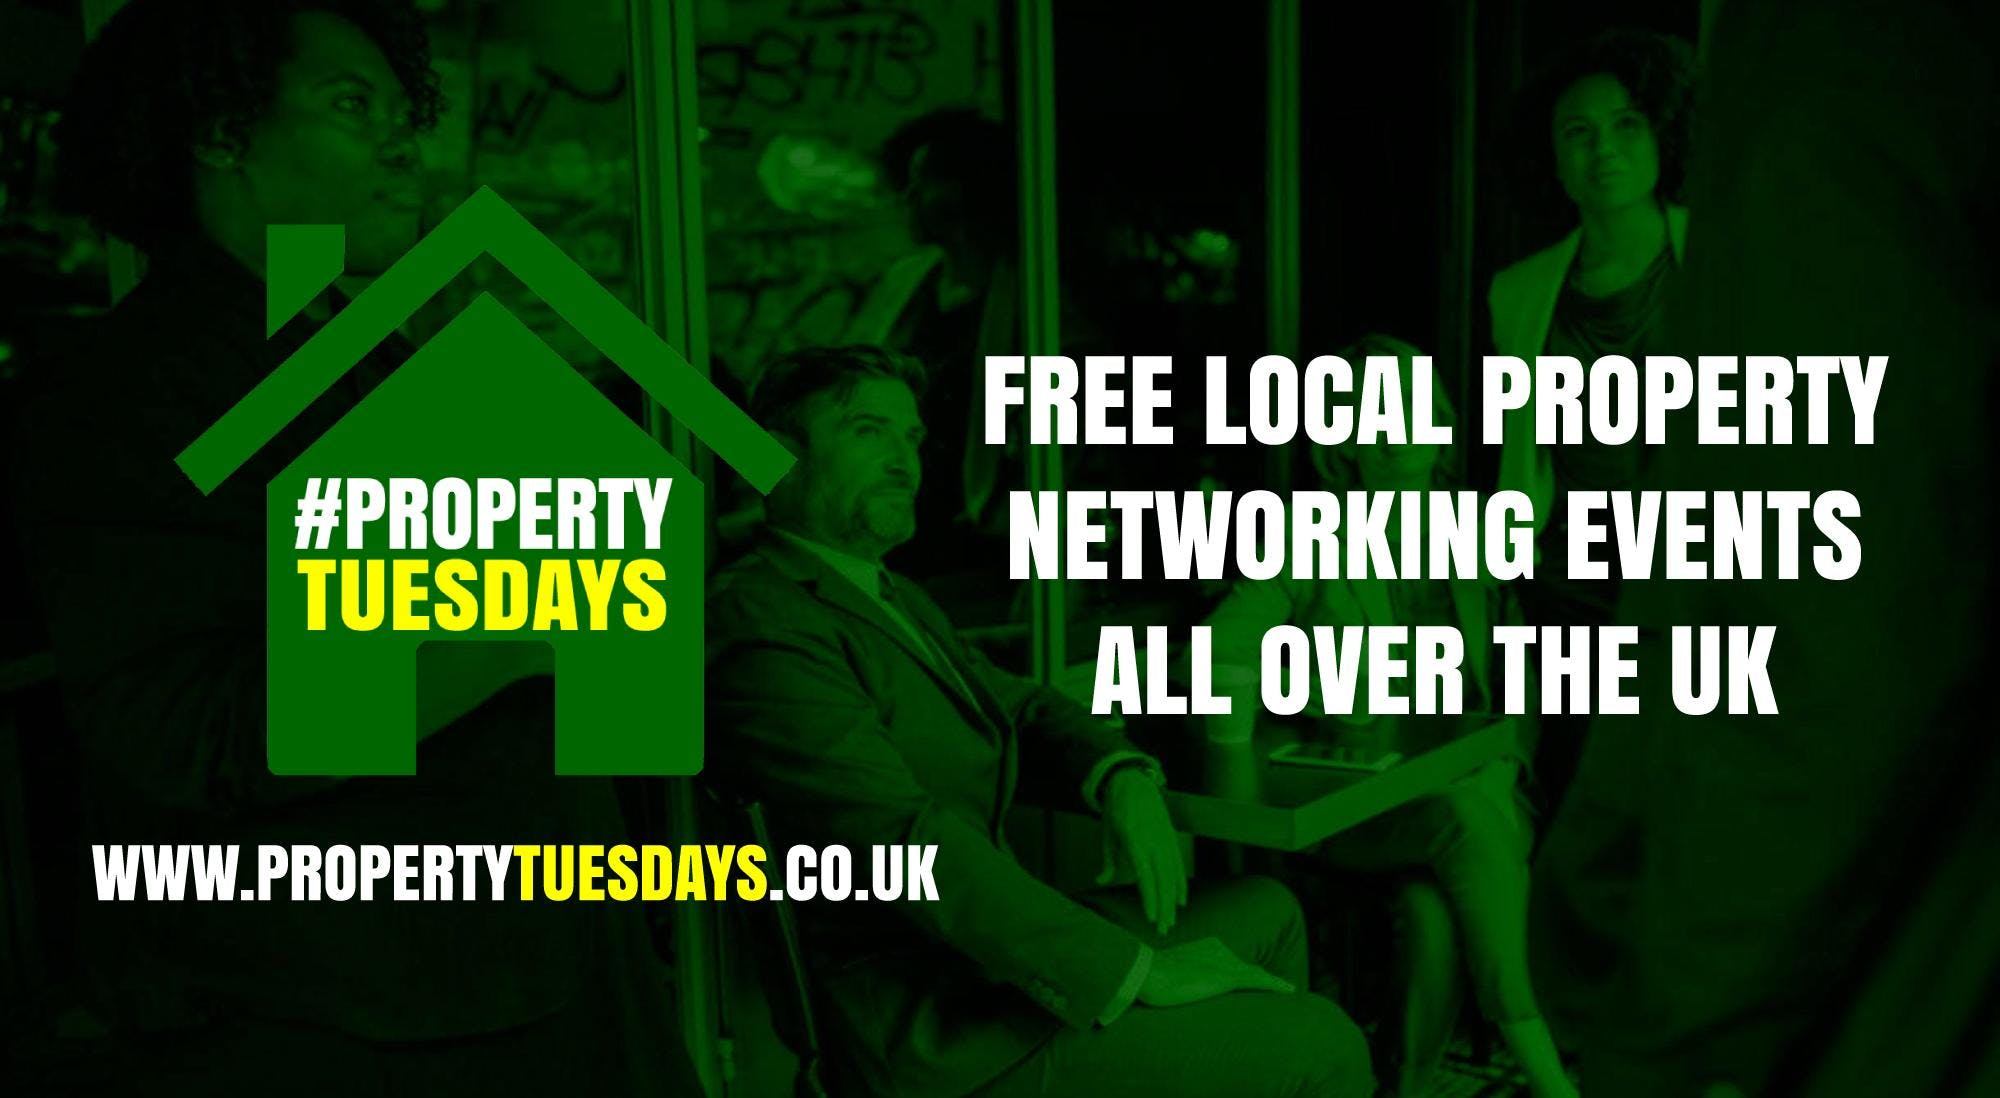 Property Tuesdays Free property networking event in Melton Mowbray